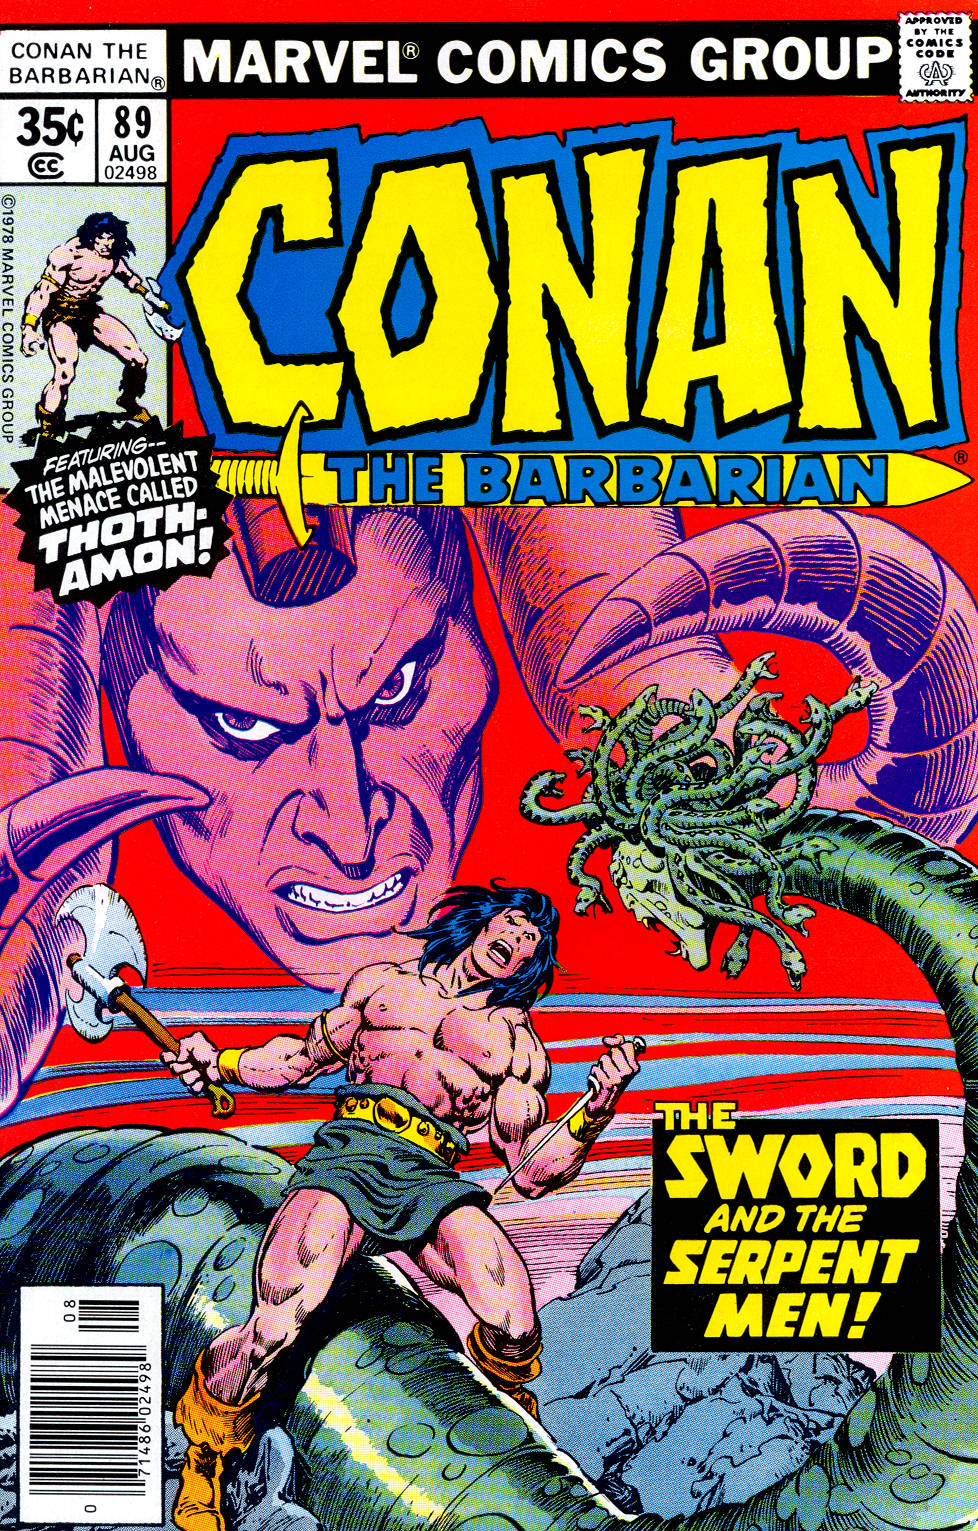 Conan the Barbarian (1970) 89 Page 1